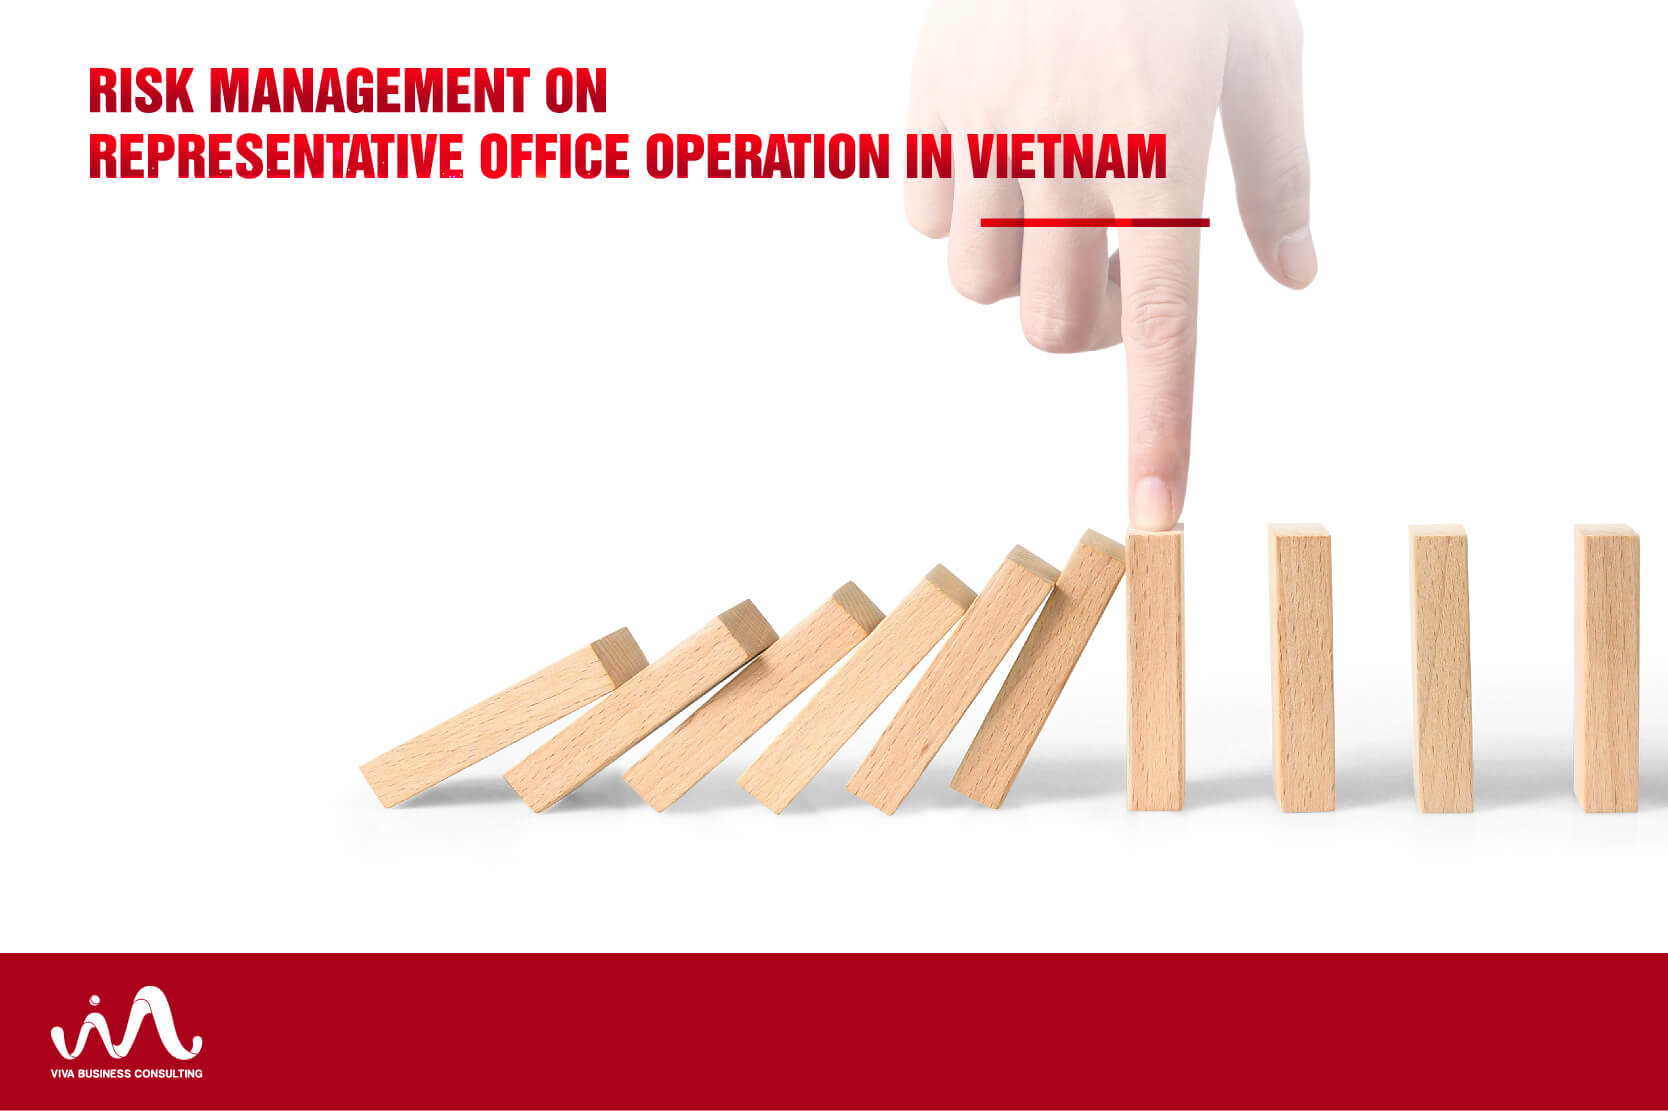 Risk Management on Representative Office Operation in Vietnam